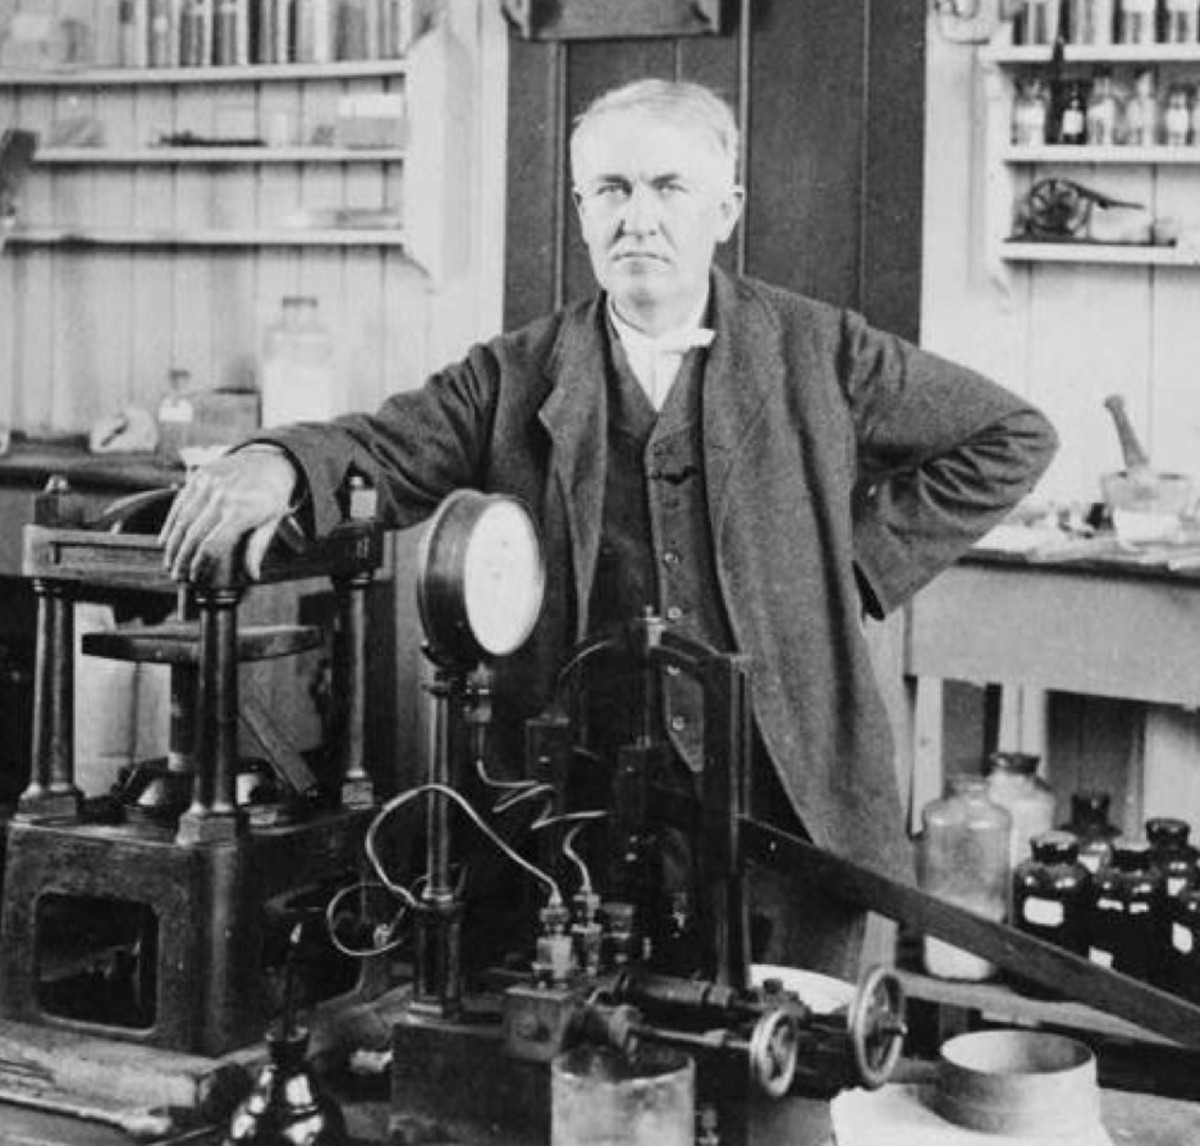 Thomas Edison in his laboratory in 1901